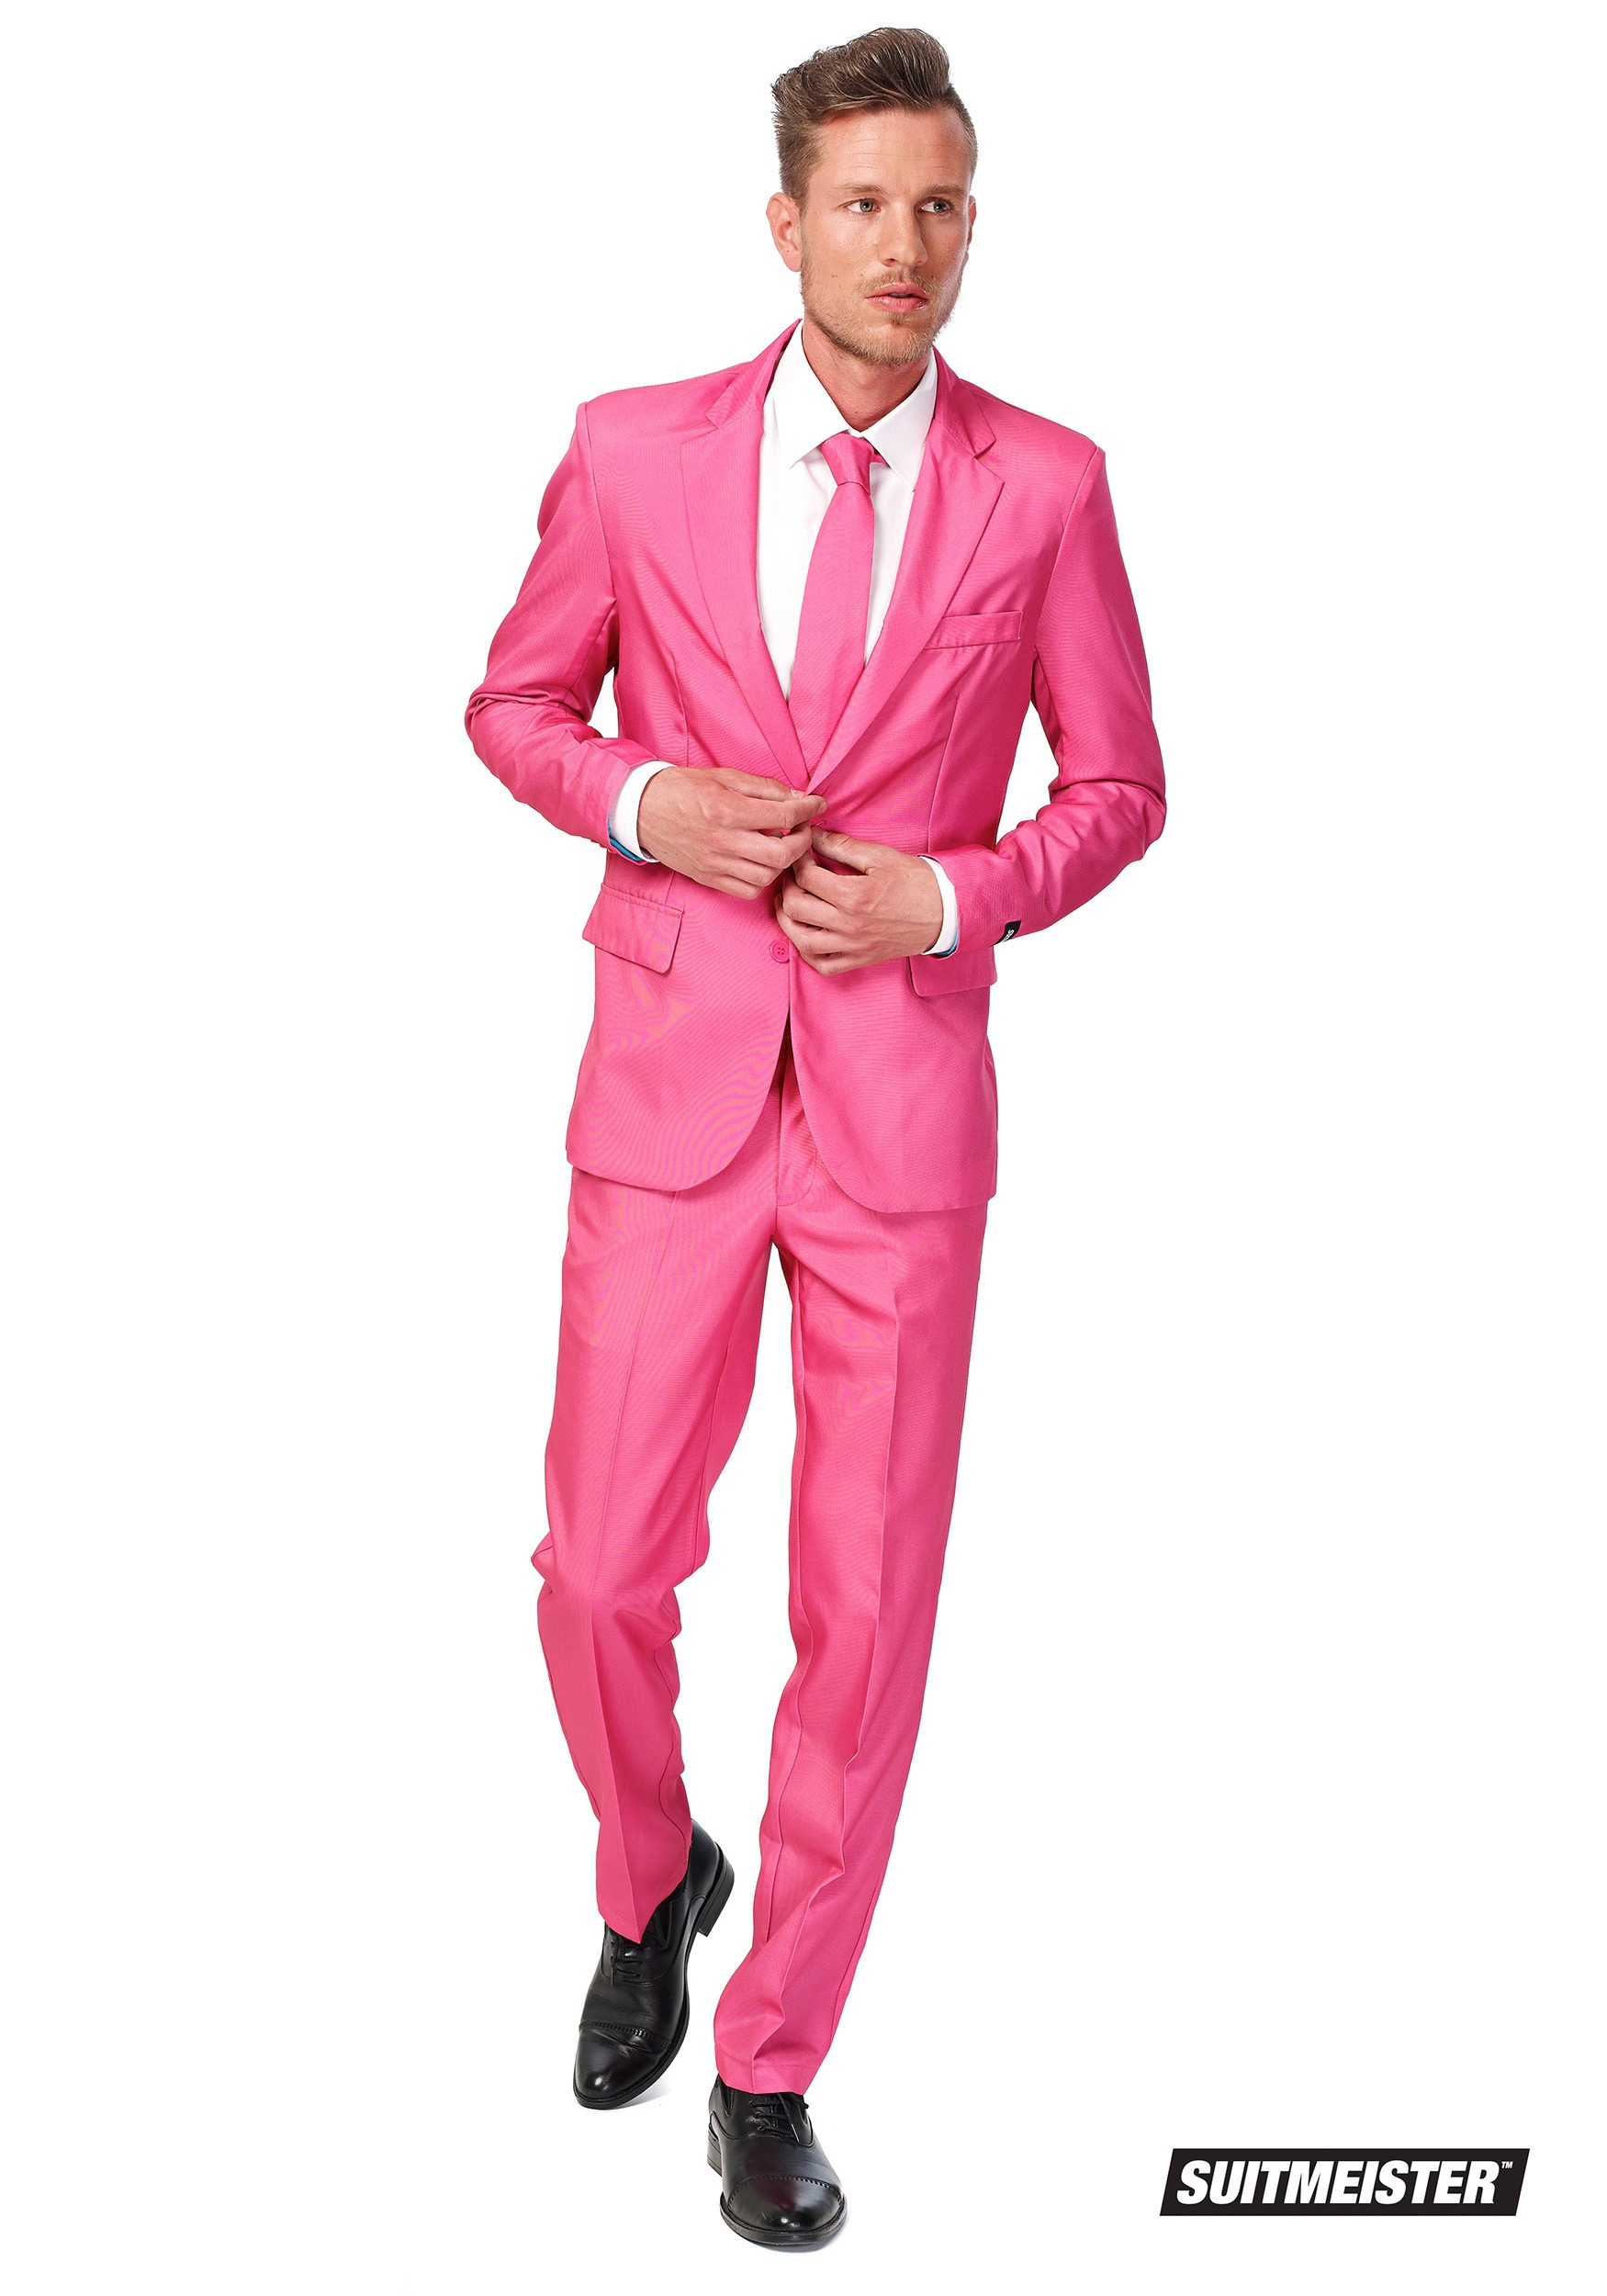 Men s suitmeister basic pink suit